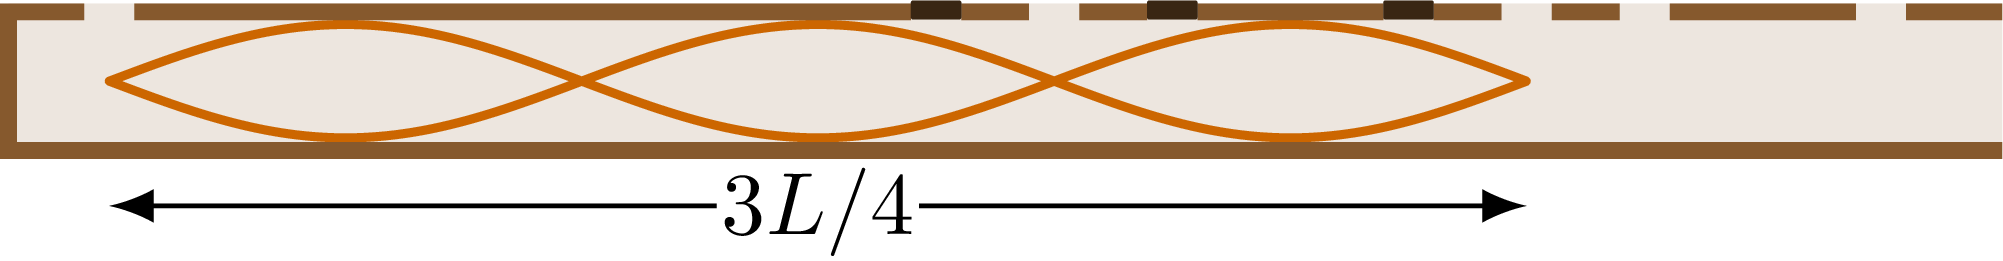 waves_standing_flute-005.png